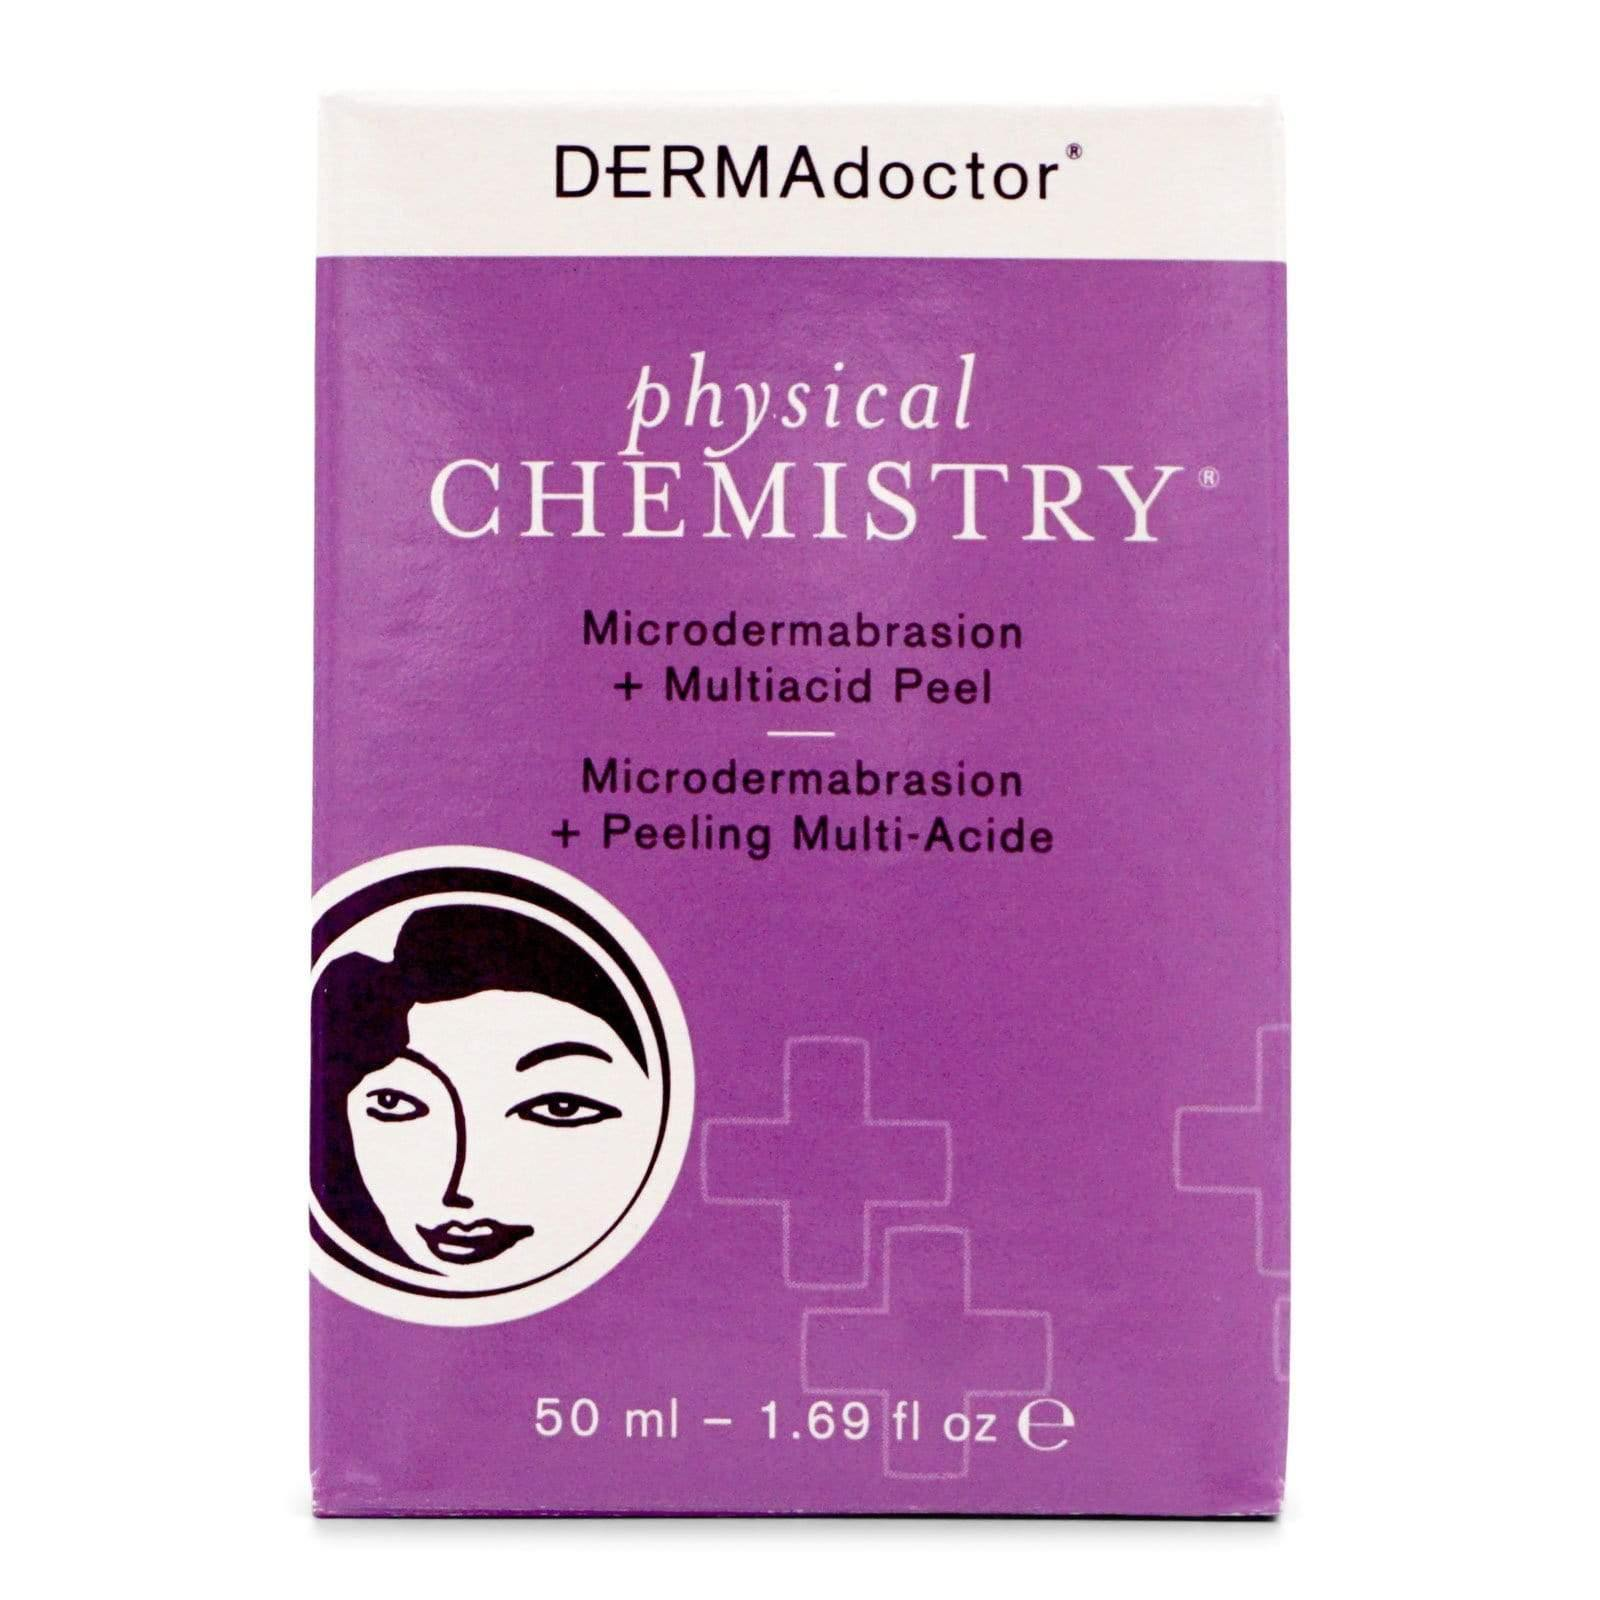 DermaDoctor Physical Chemistry Microdermabrasion + Multiacid Peel - (50ml/1.69oz) (12/cs)